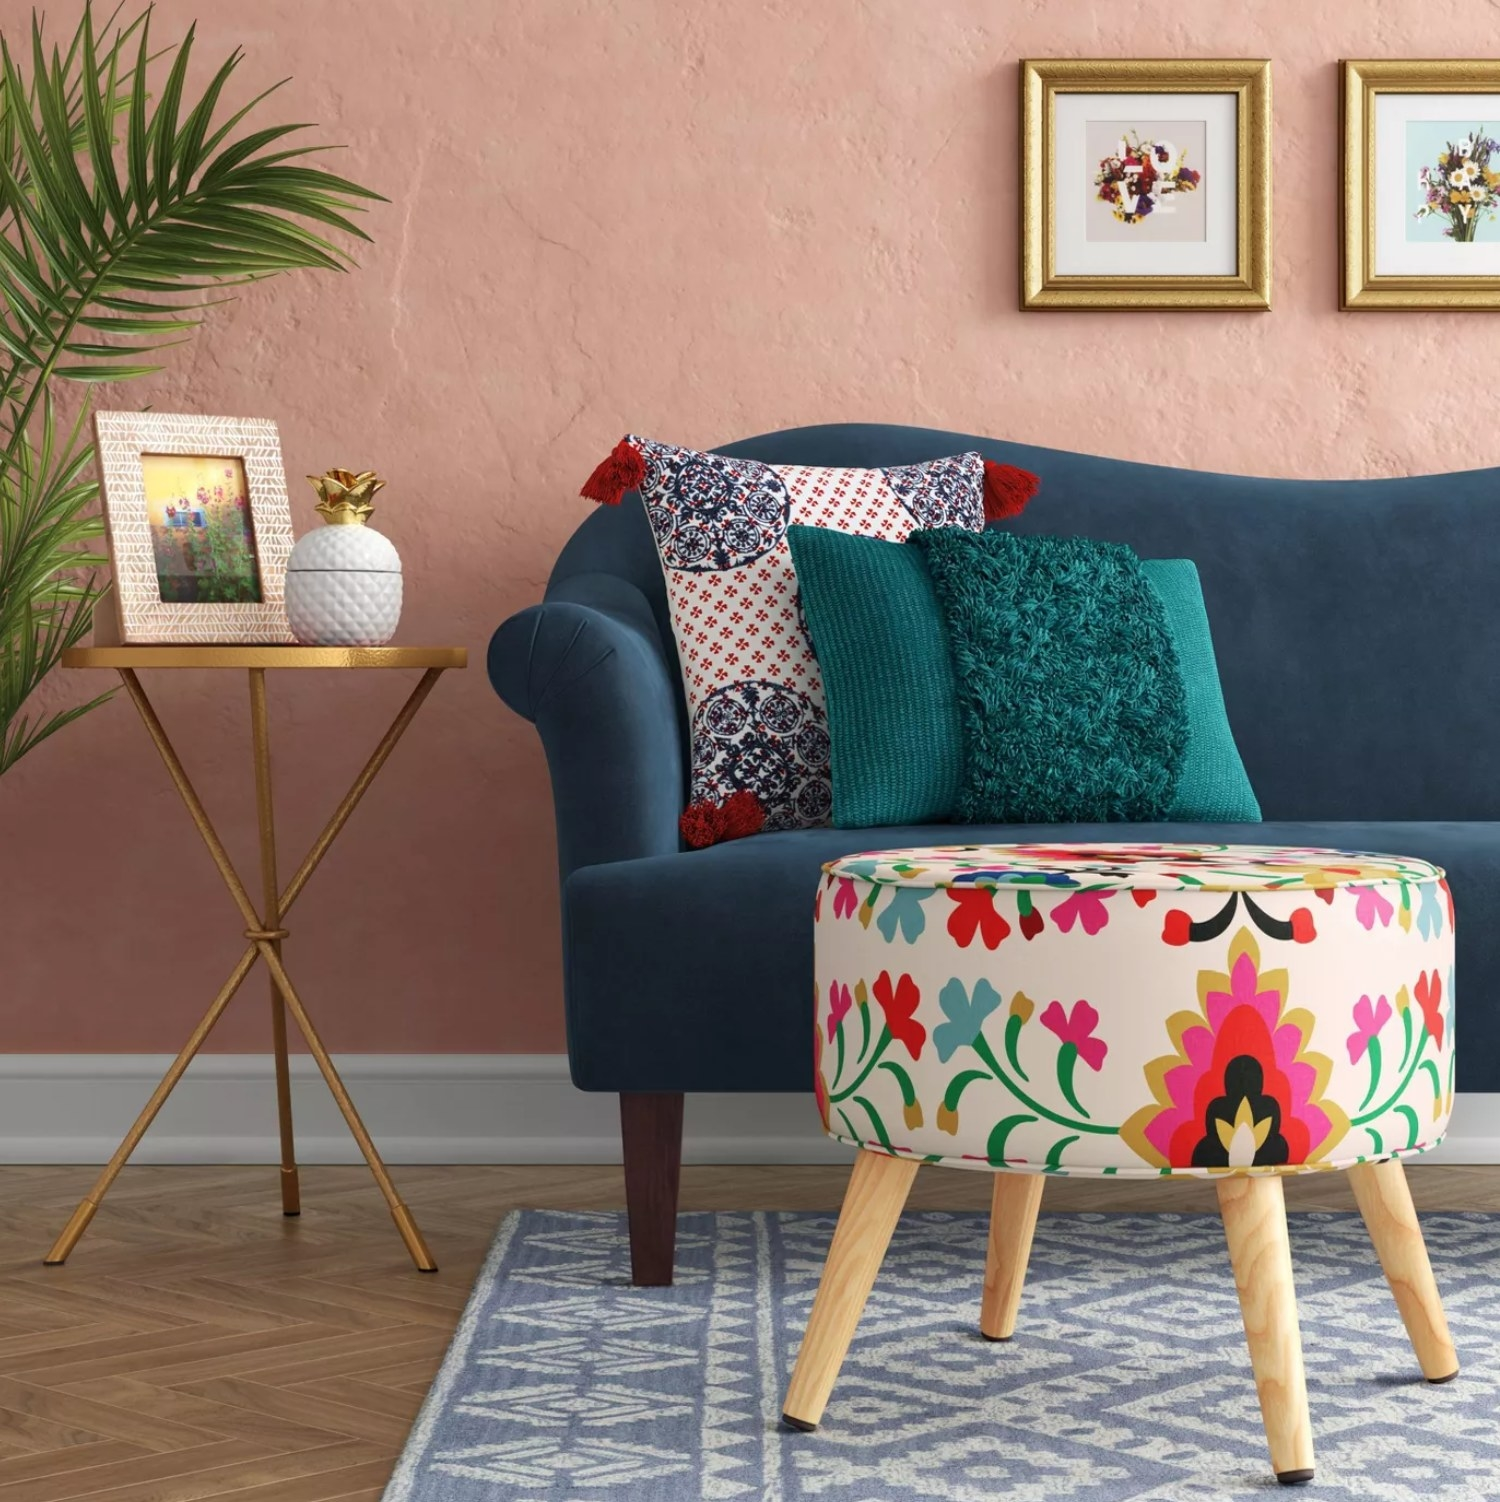 The ottoman with wooden legs and colorful flower pattern in a room with a couch and table